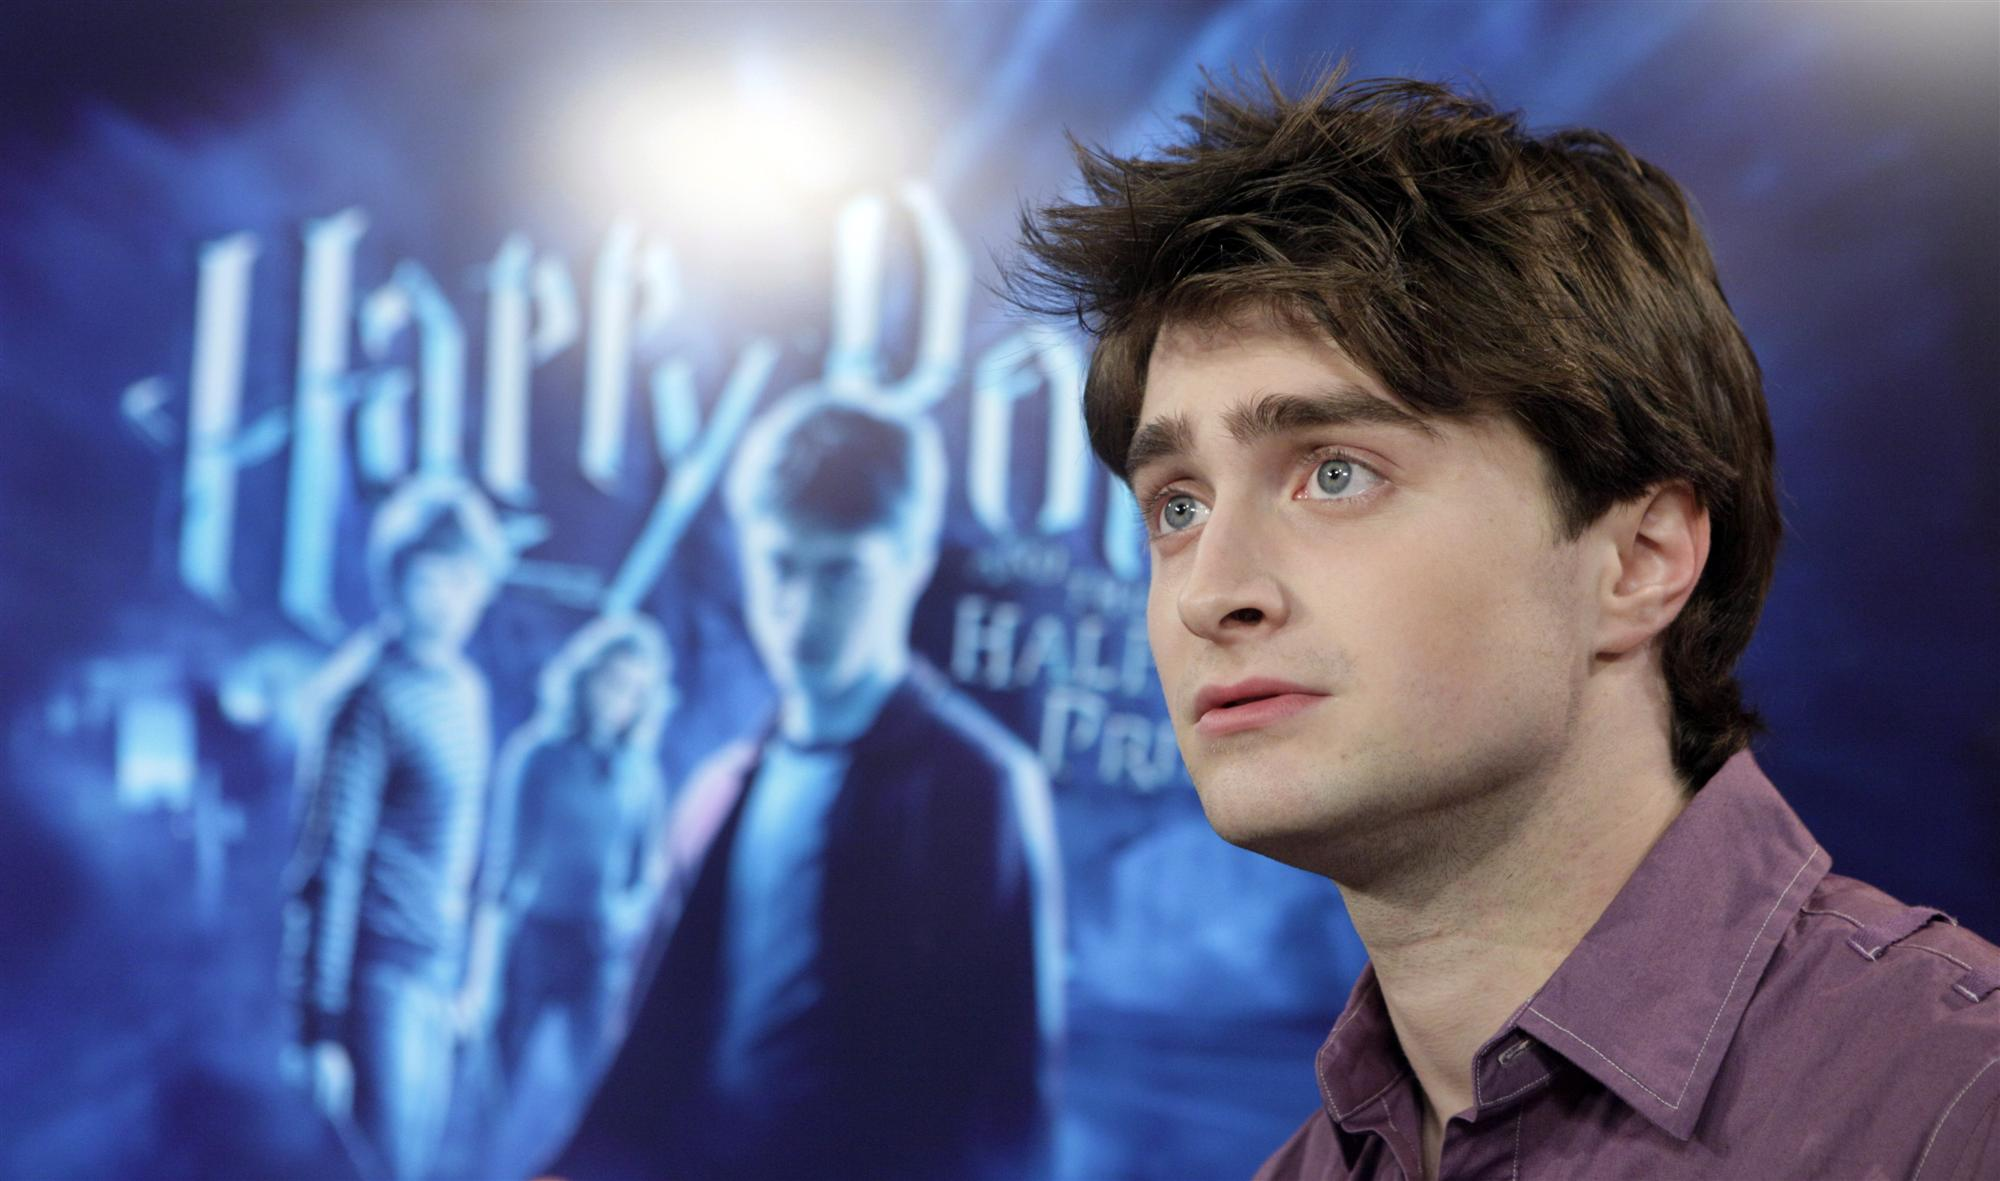 Harry potter  the deathly hallows: part 1 @ odeon leicester square in london